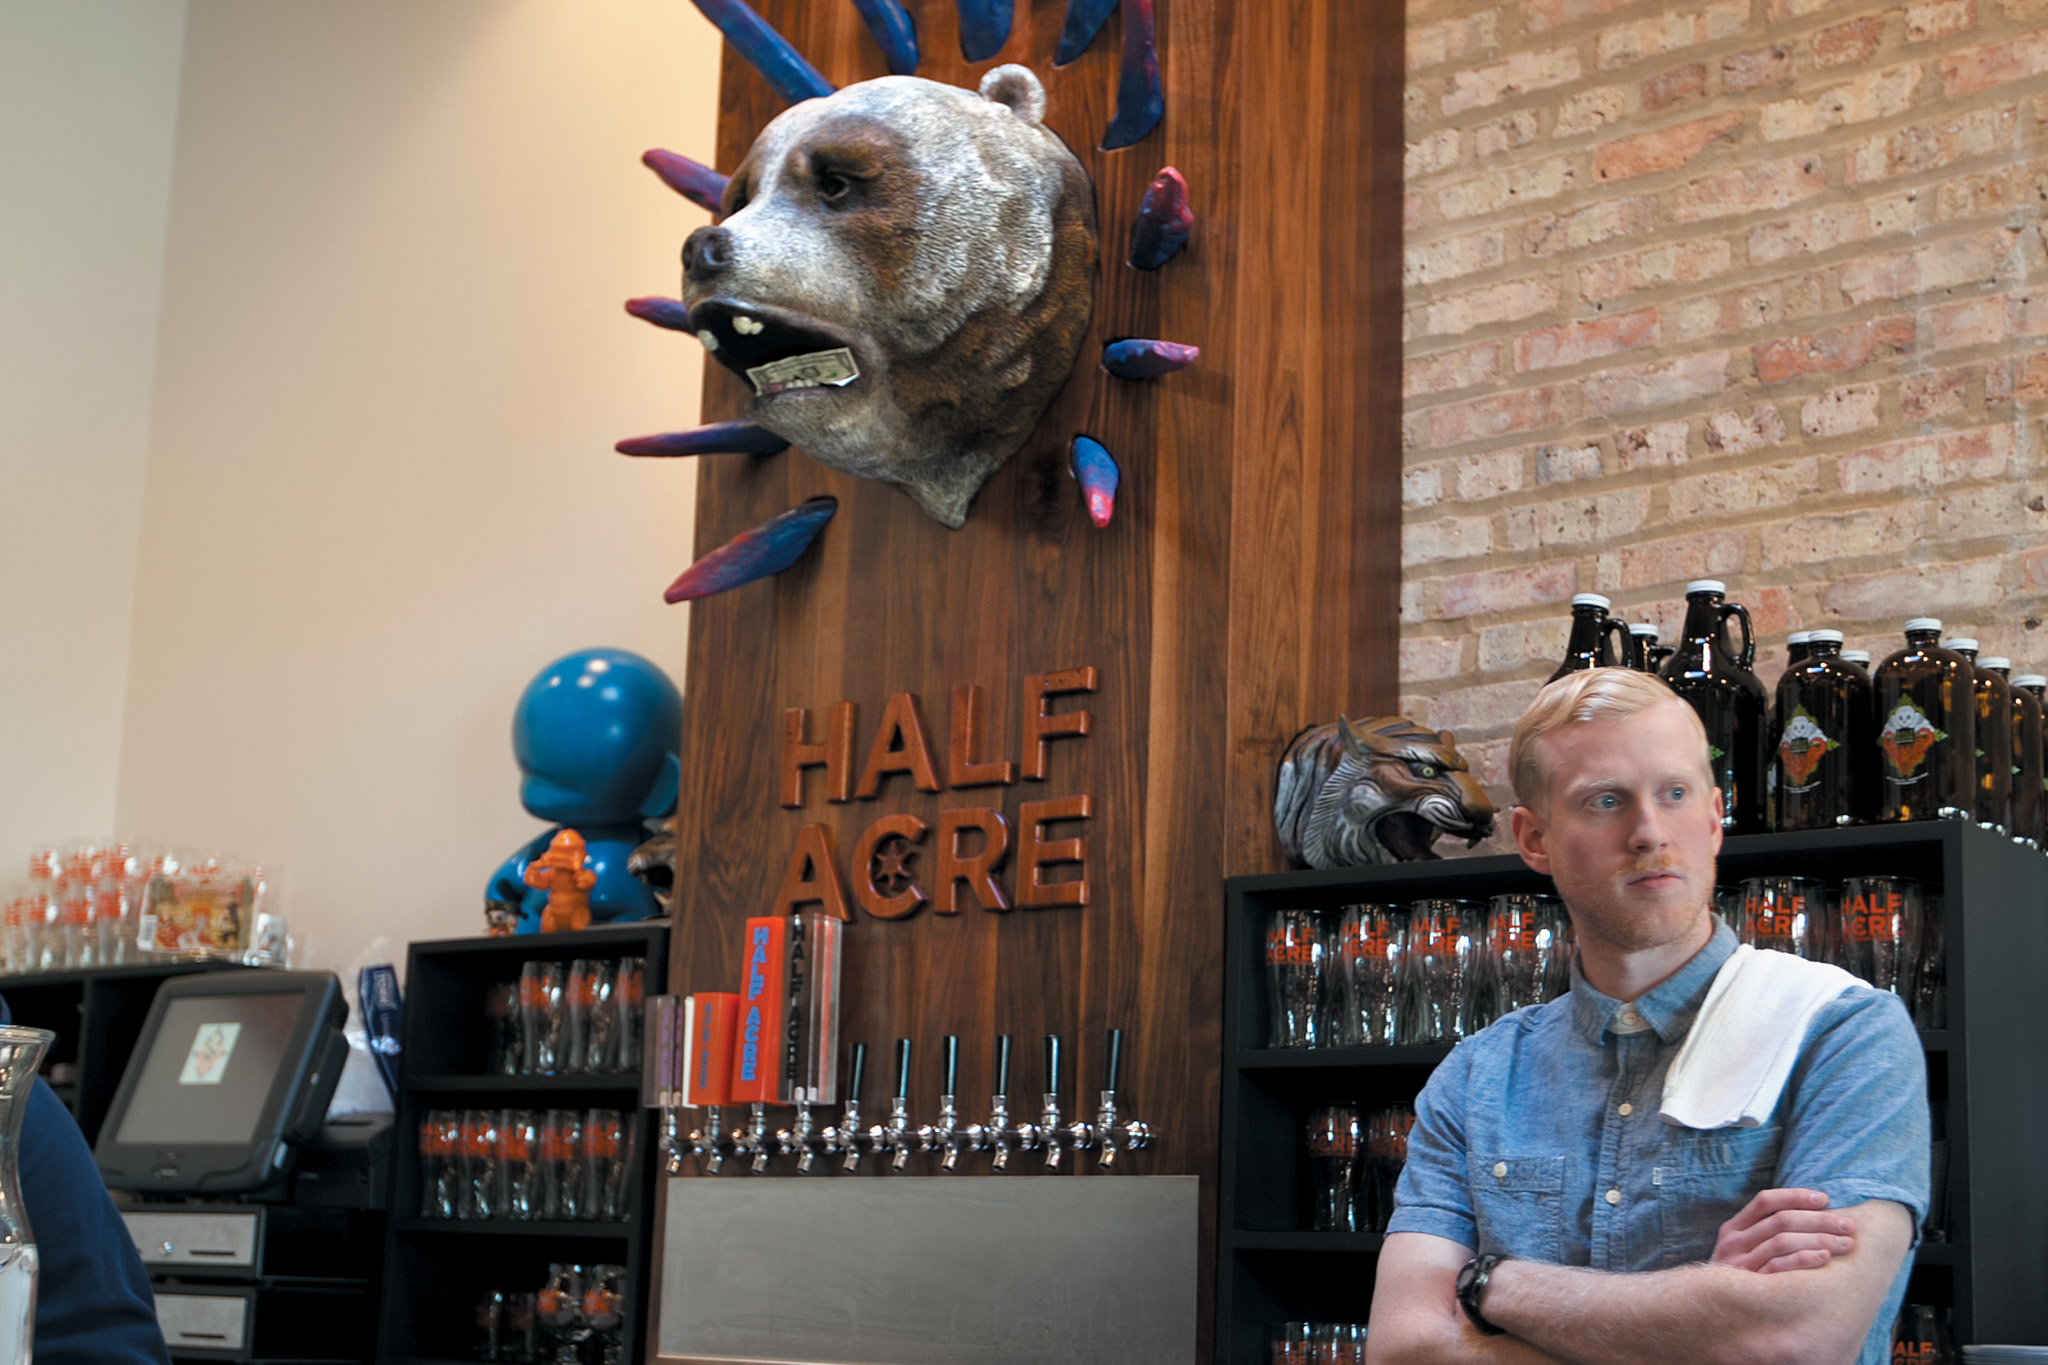 Sip a free pint of Daisy Cutter at Half Acre this week